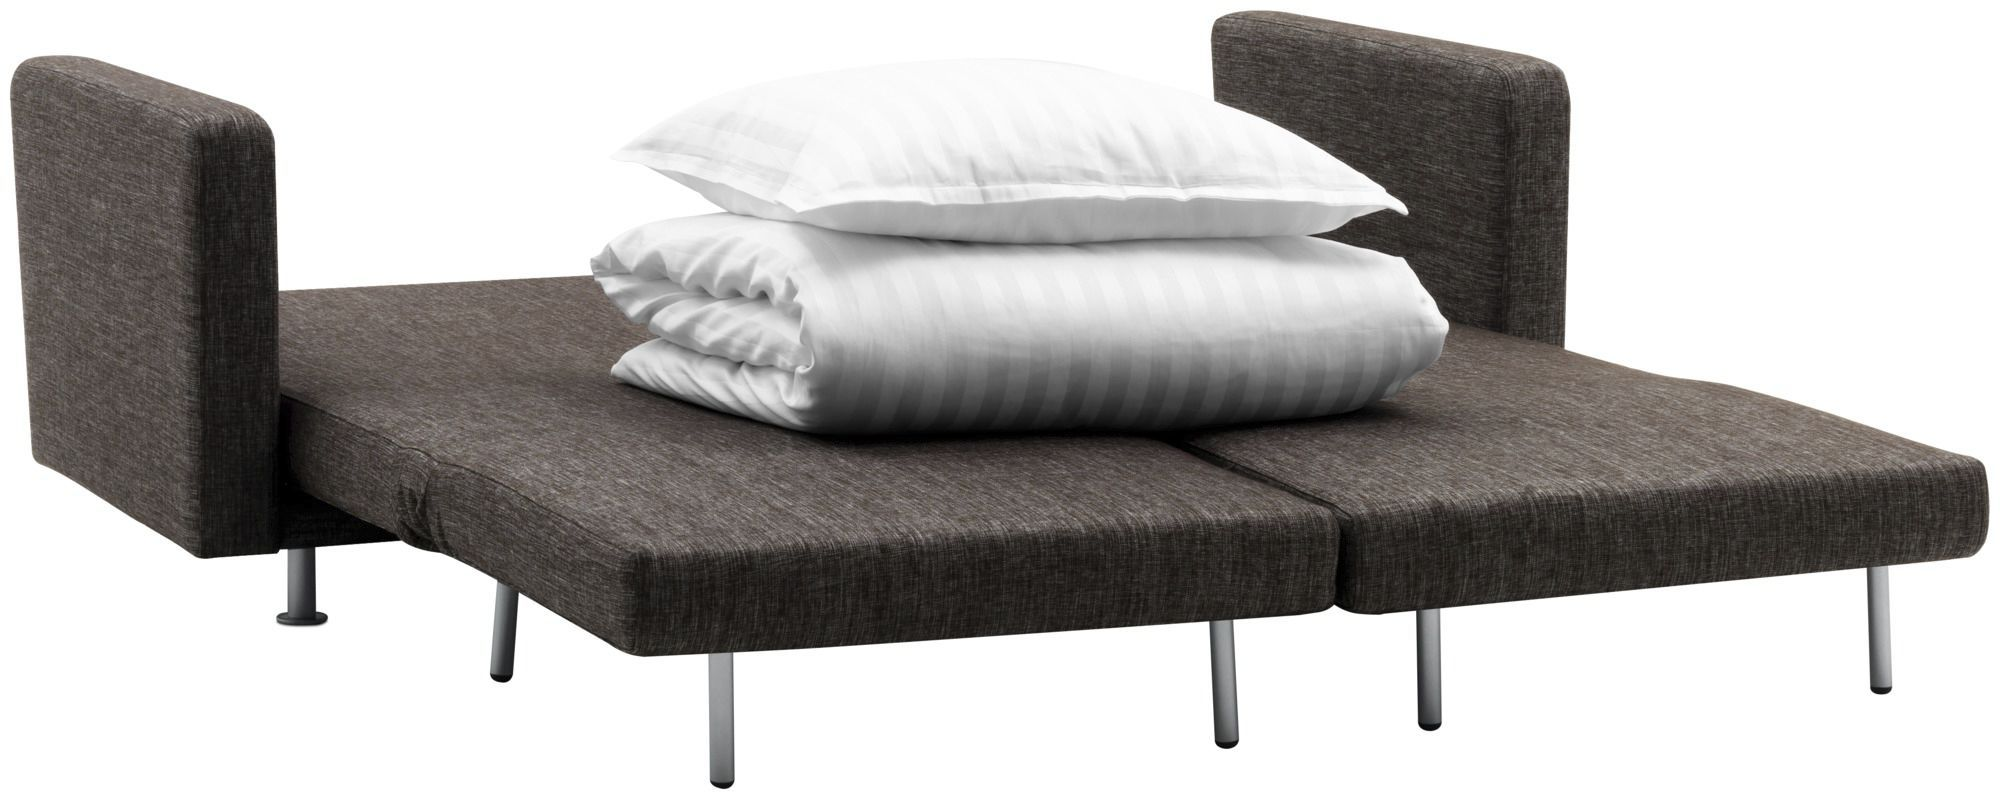 Sofa bed contemporary fabric 25seater MELO BoConcept